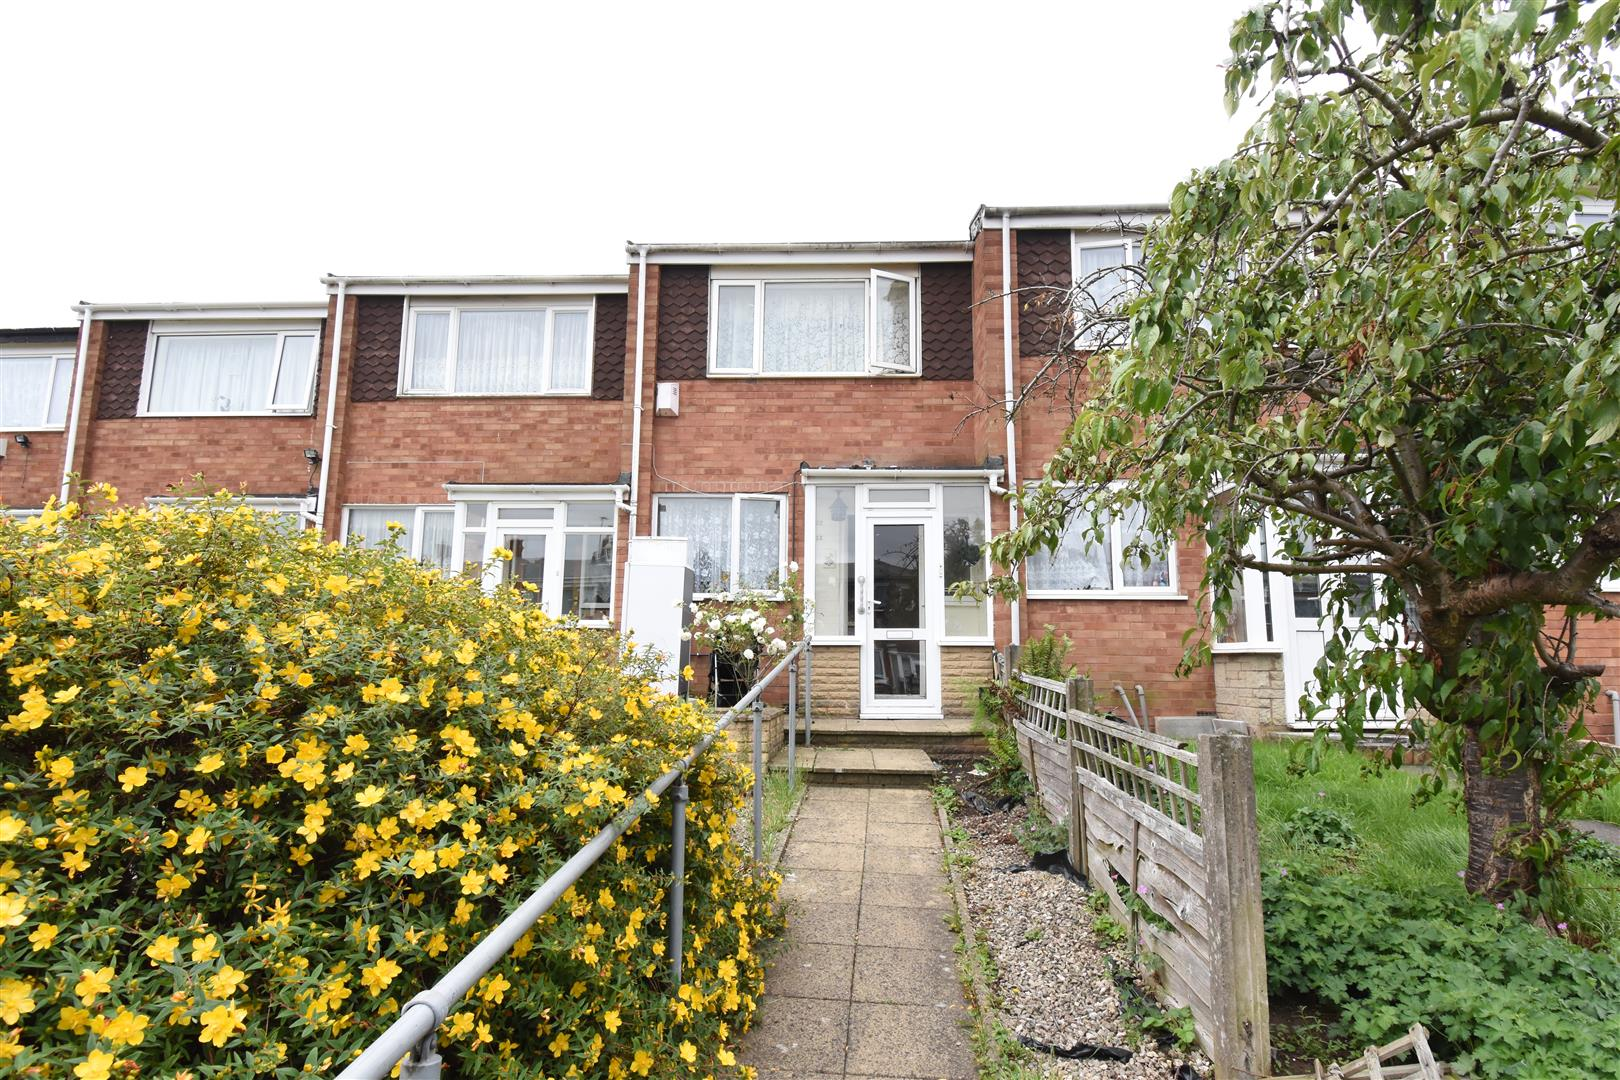 2 bed house for sale in Oxford Close, Ward End, Birmingham, B8